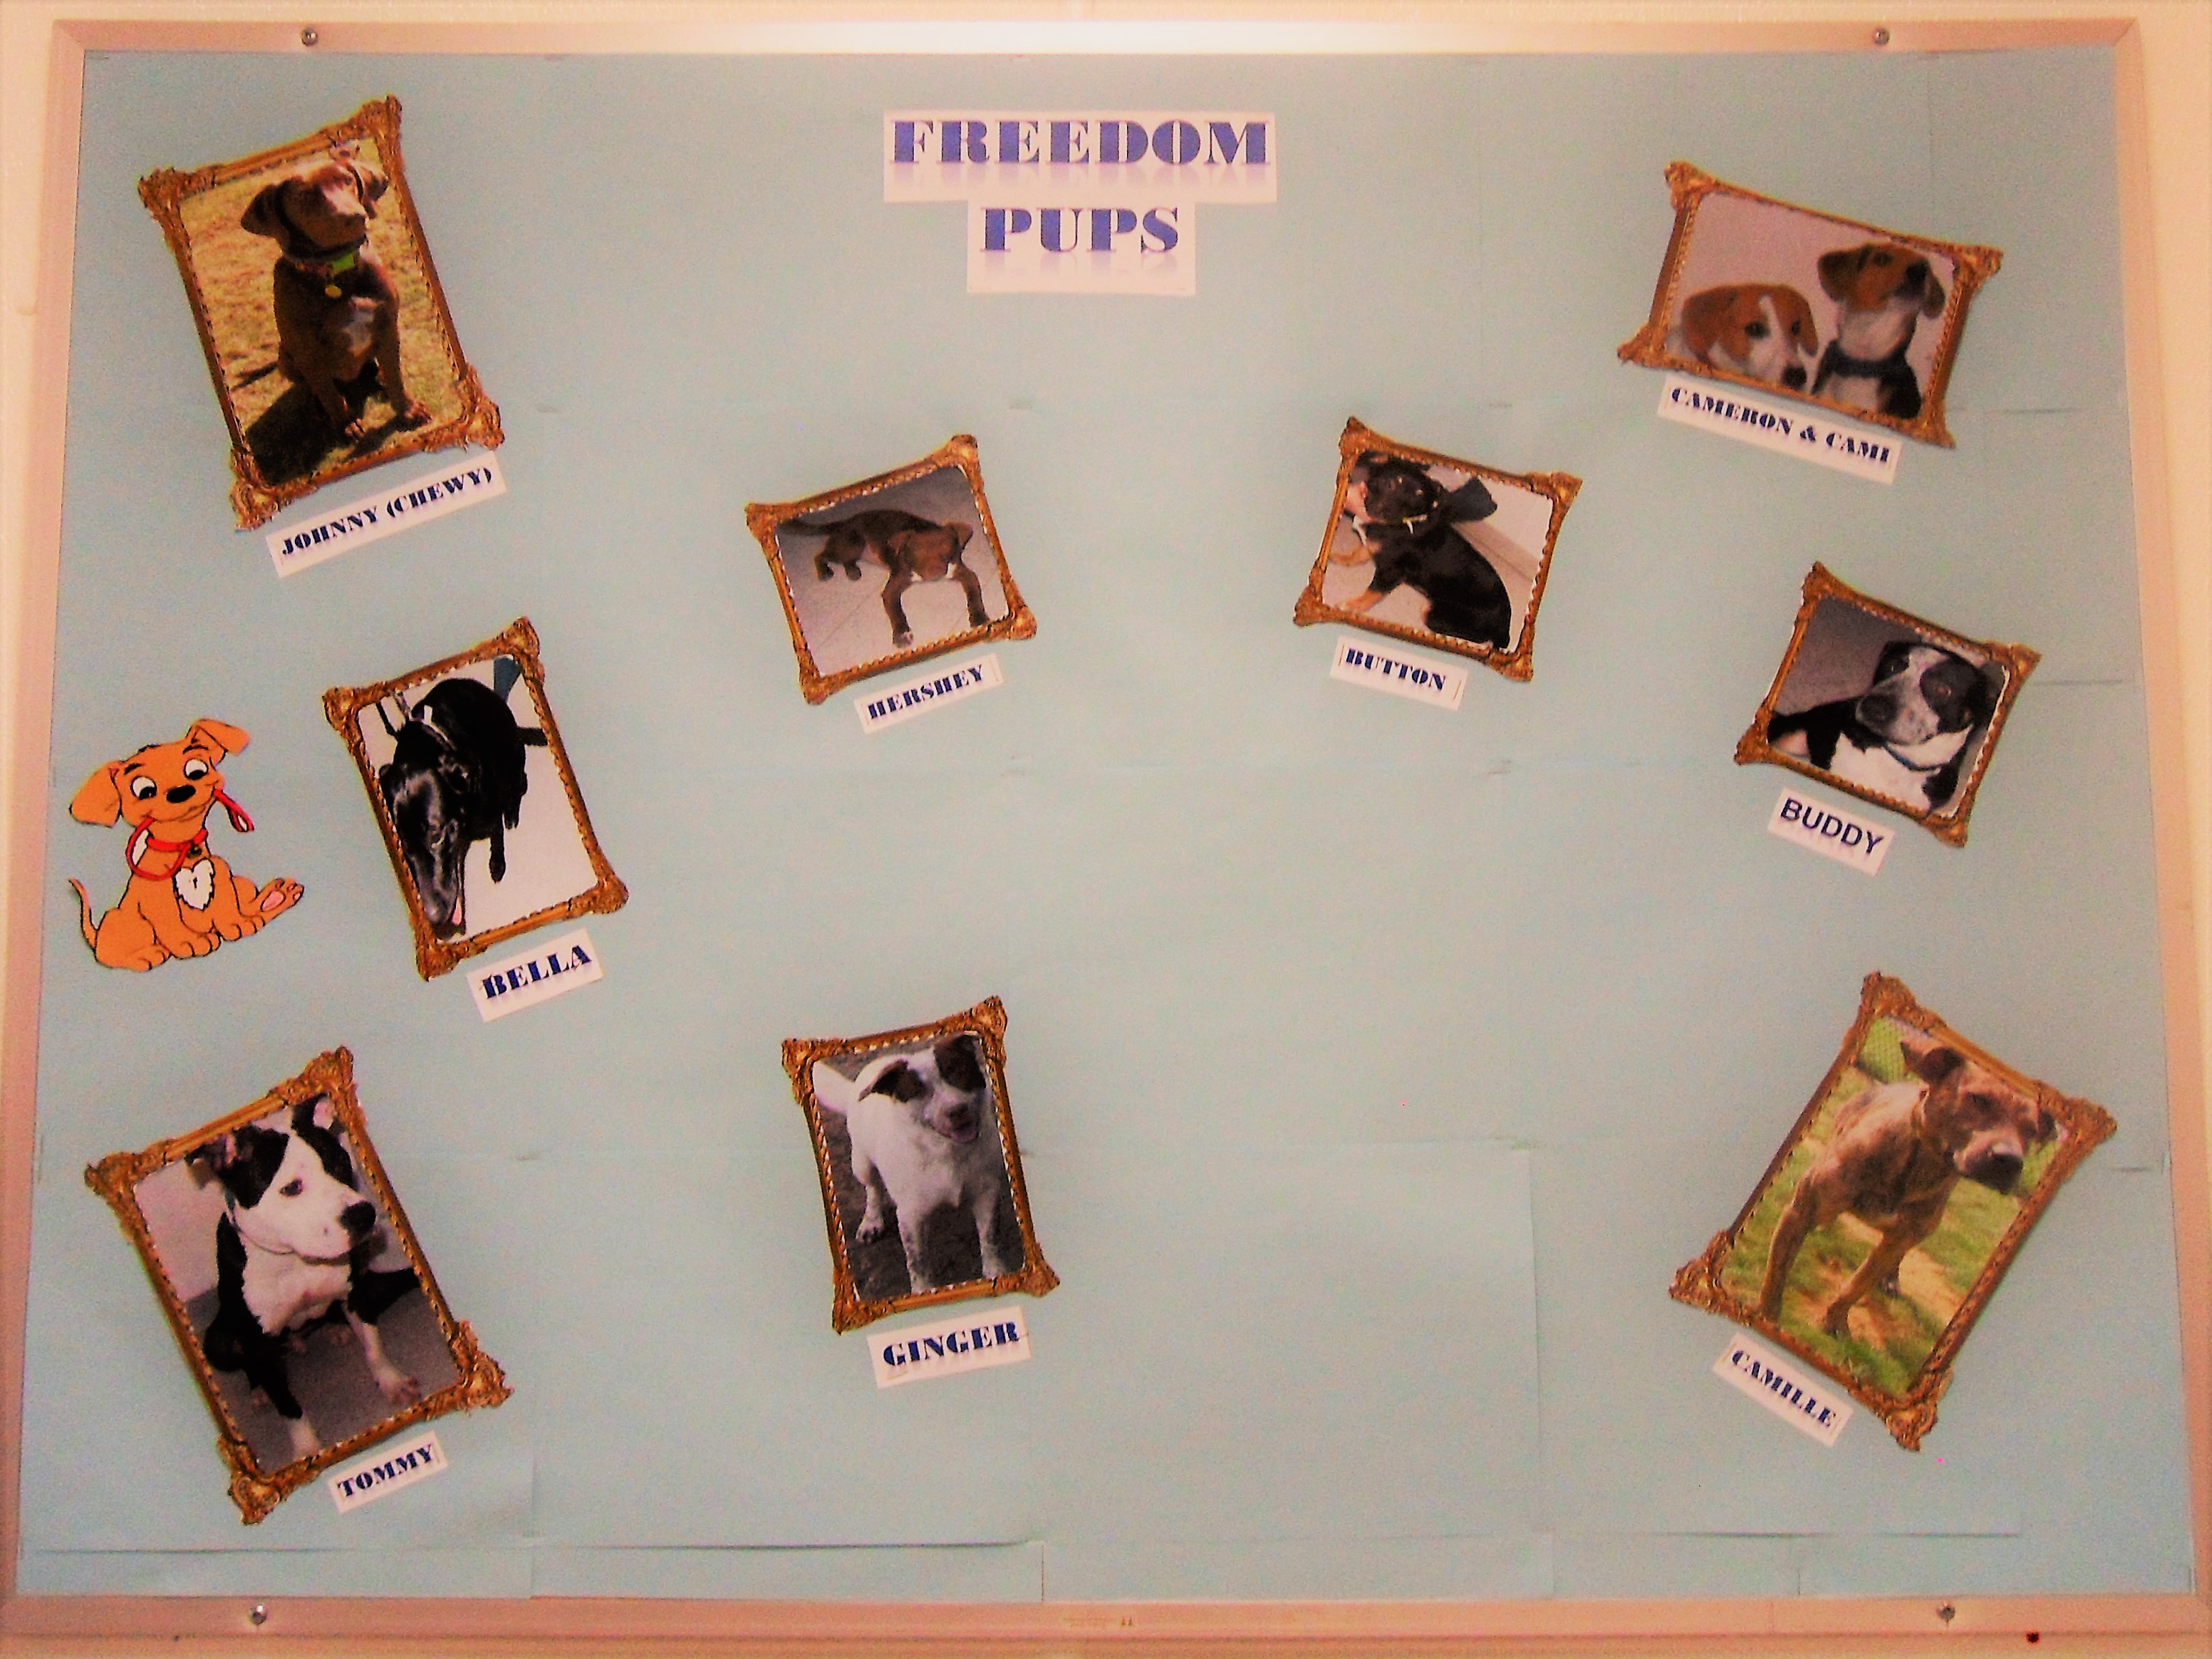 Project Good Dog Gives Hampden Prisoners And Pups A Second Chance Circuit Board Picture Frame Geek Armory Bulletin Of The Dogs Who Have Been Adopted As Part Photo By Sarah Heinonen